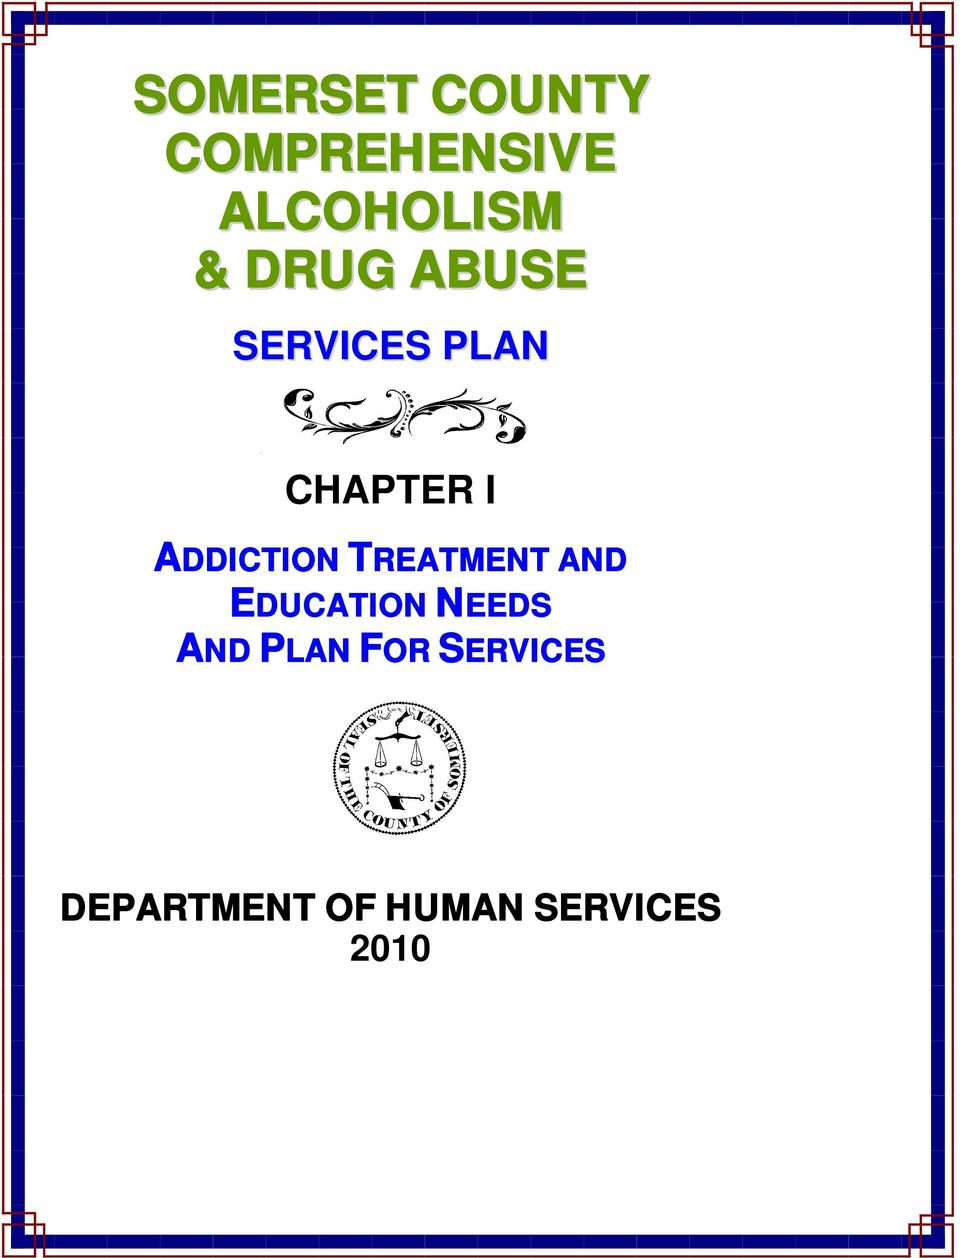 ADDICTION TREATMENT AND EDUCATION NEEDS AND